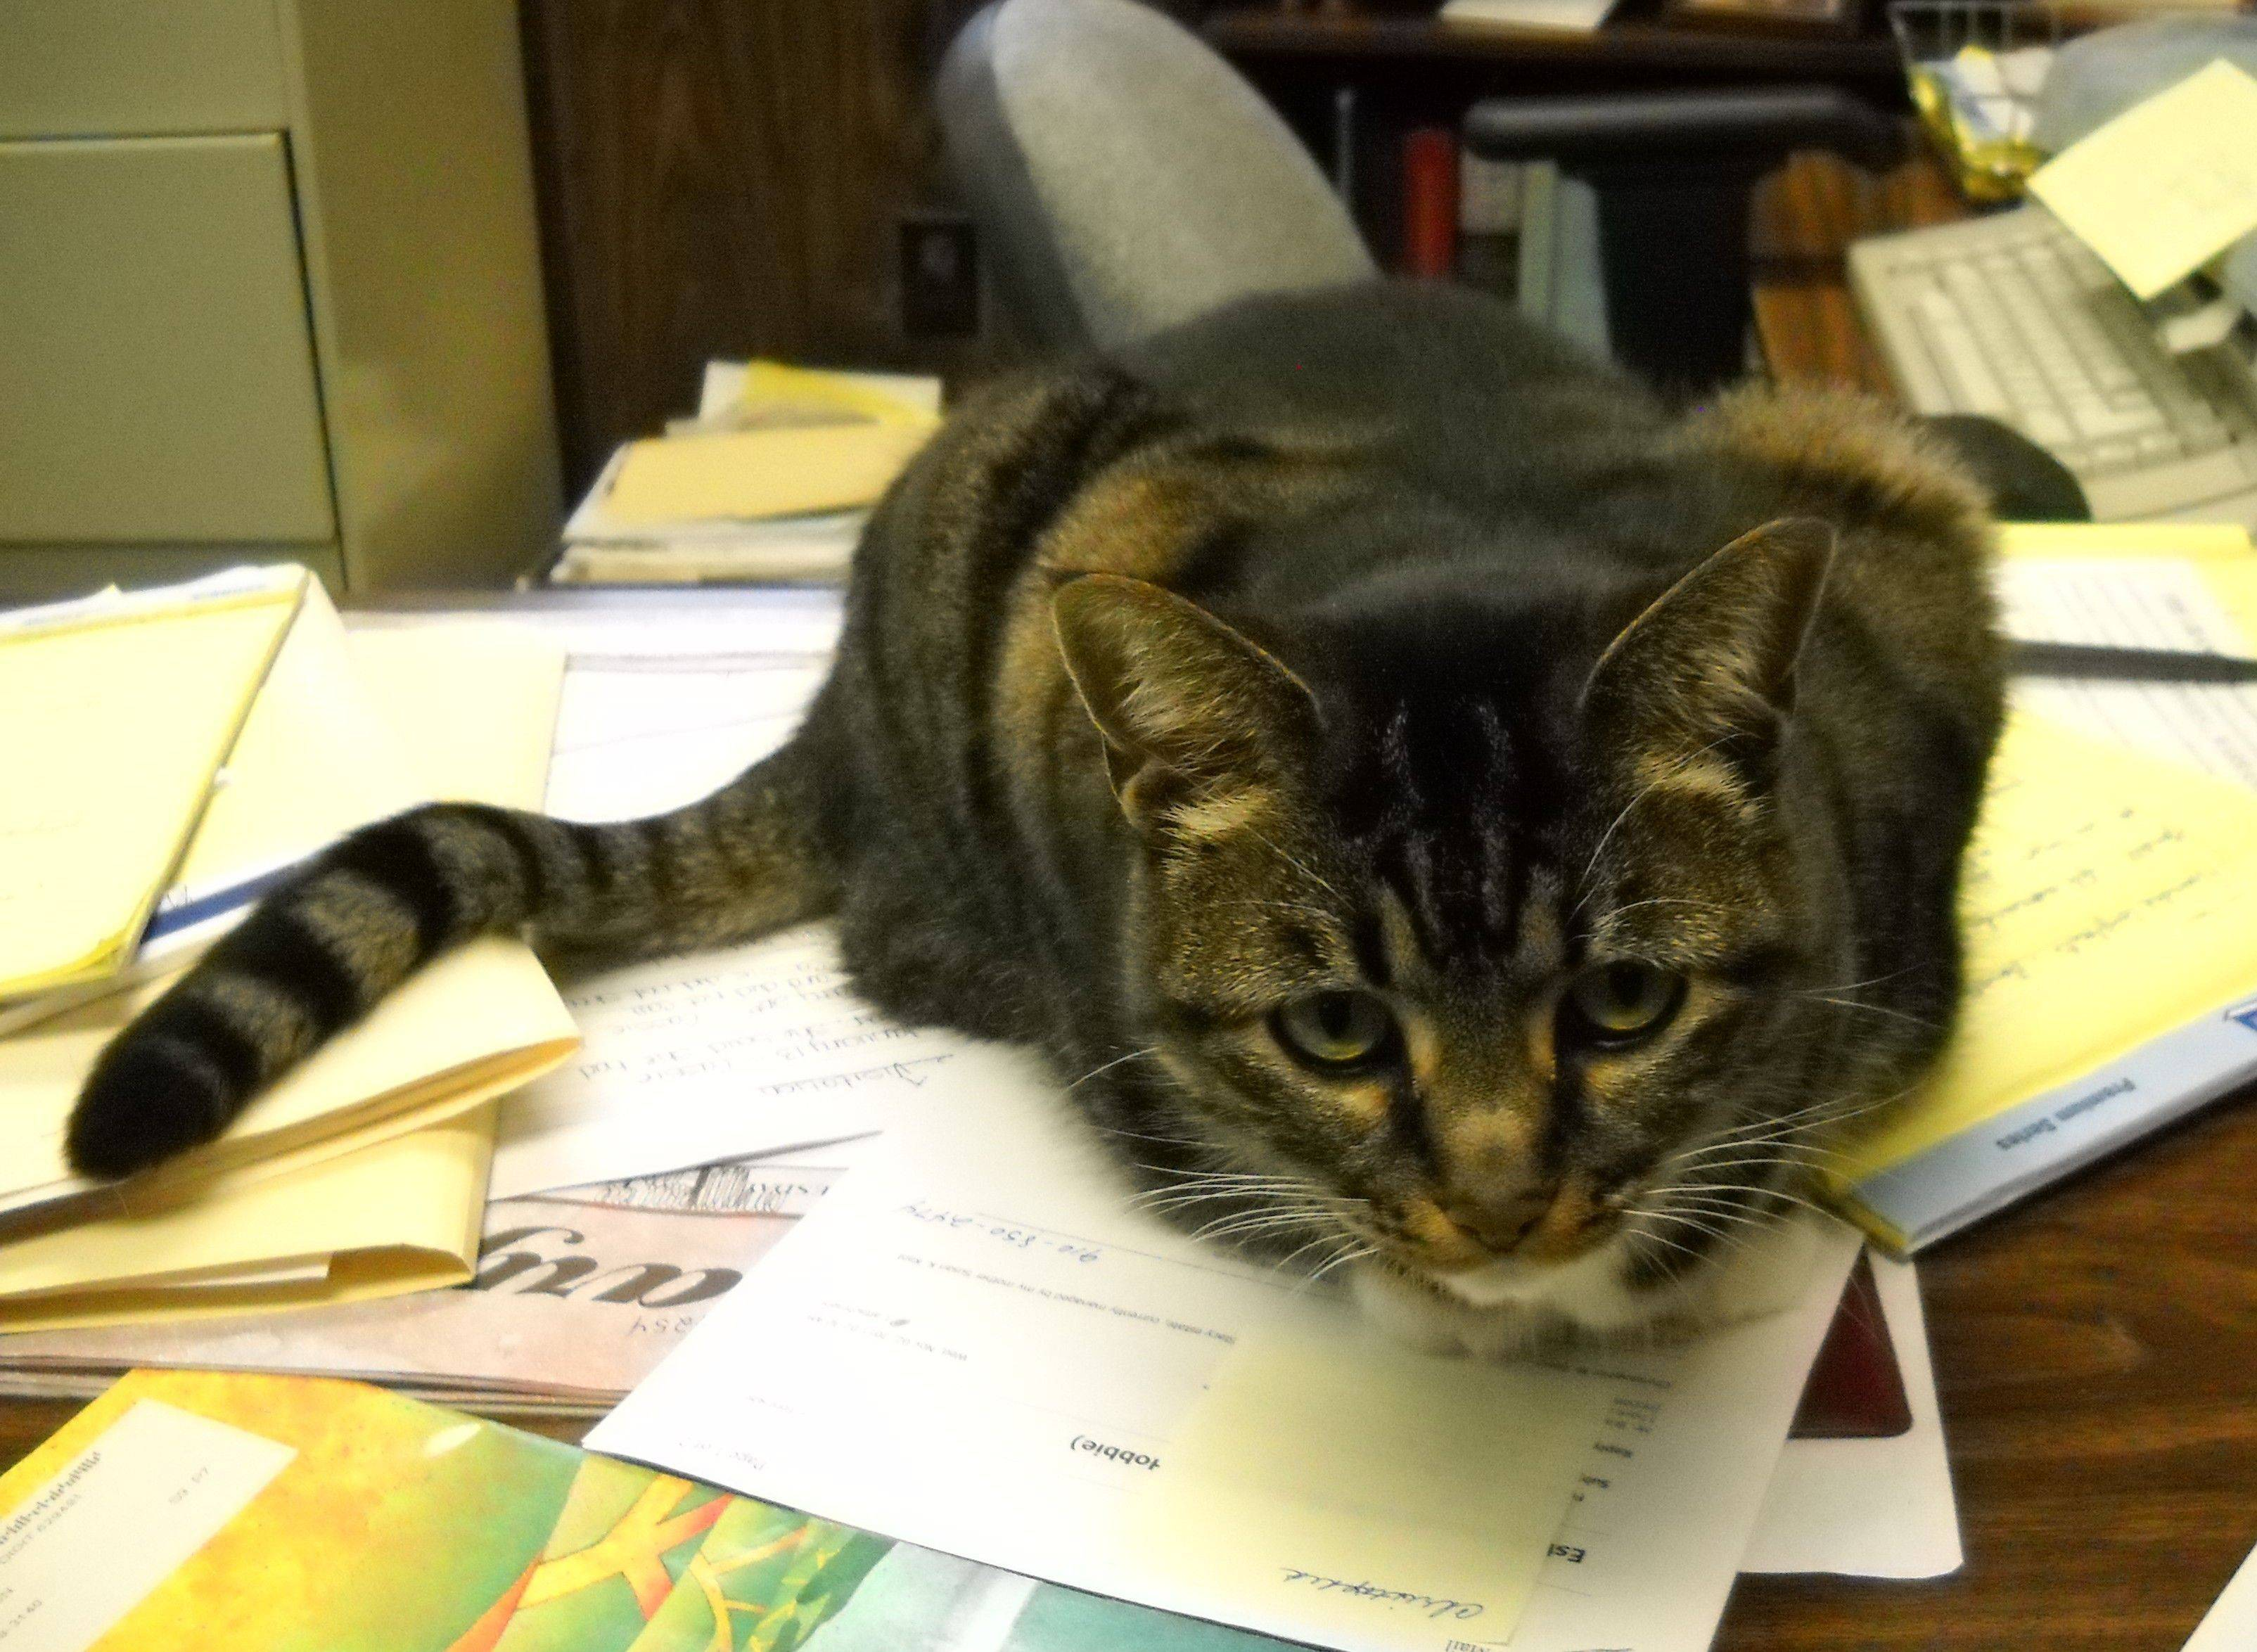 Callie, the other Brandon law office cat, doesn't understand all the fuss surrounding Comiskey's return. She's not supposed to be on the desk, by the way.